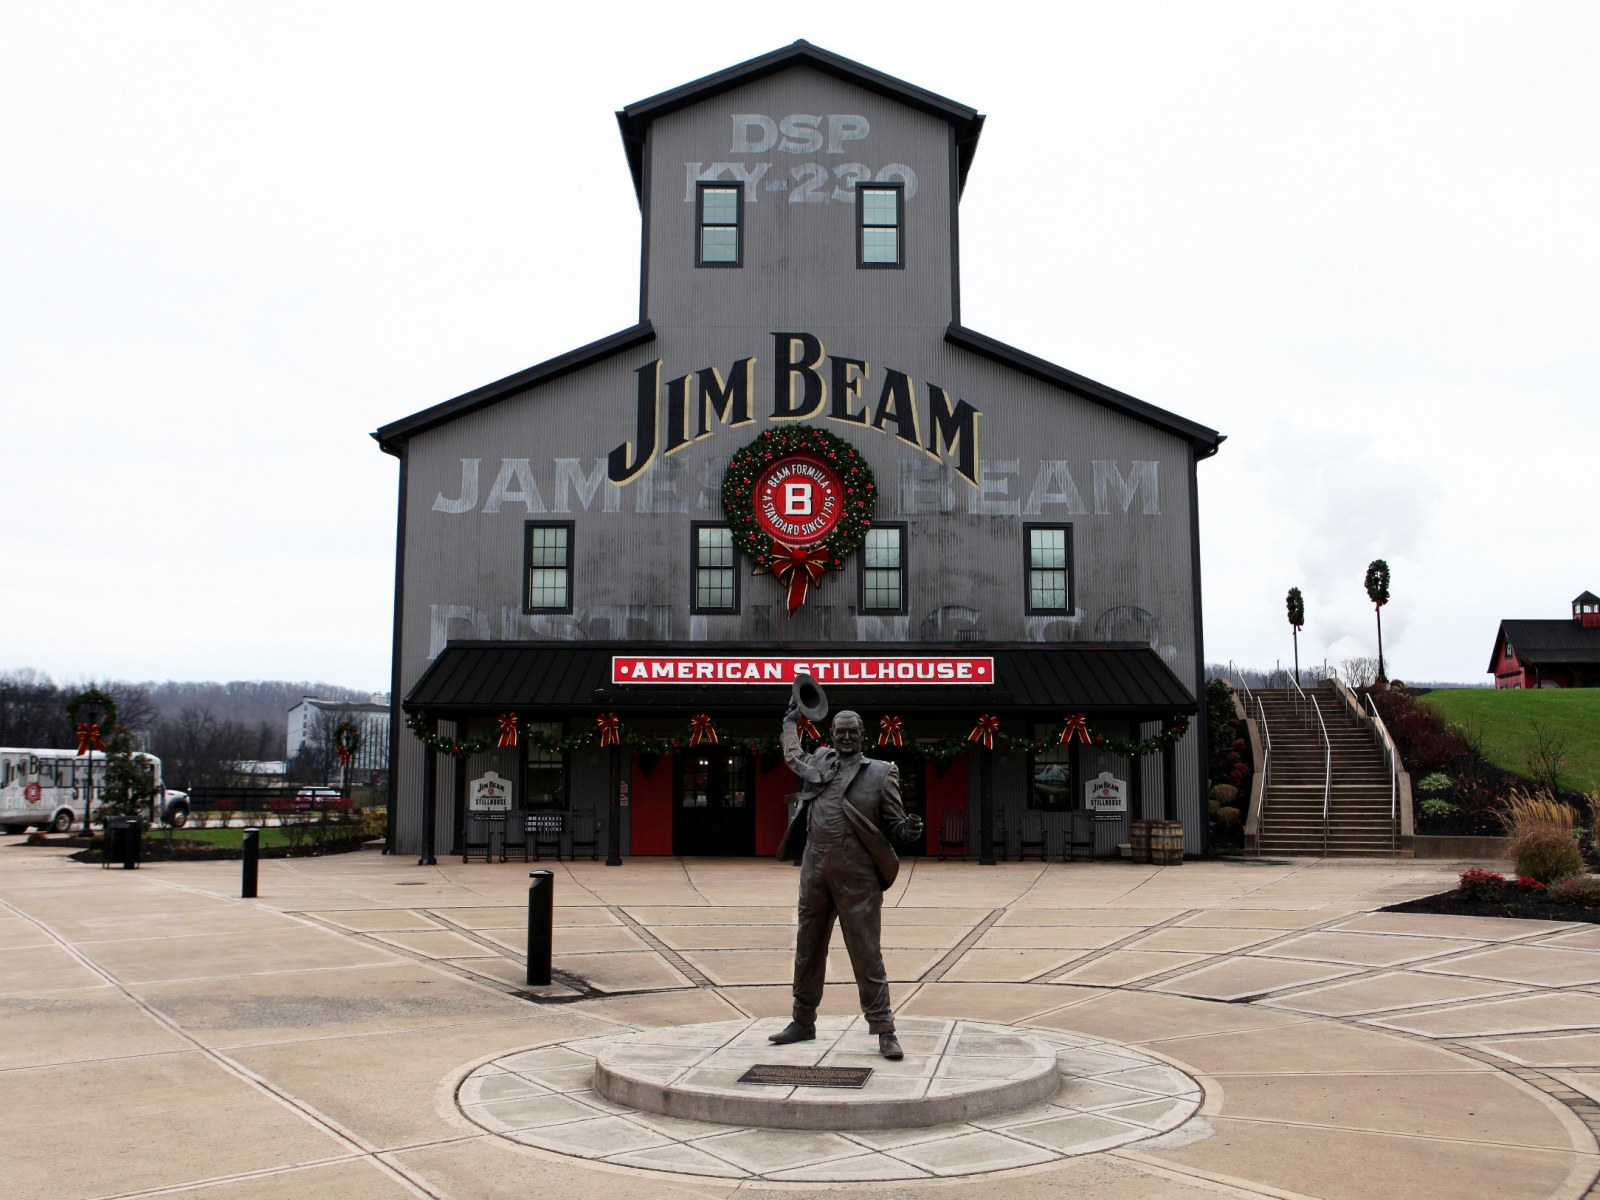 Jim Beam American Stillhouse On Airbnb Location Price And How To Get A Reservation